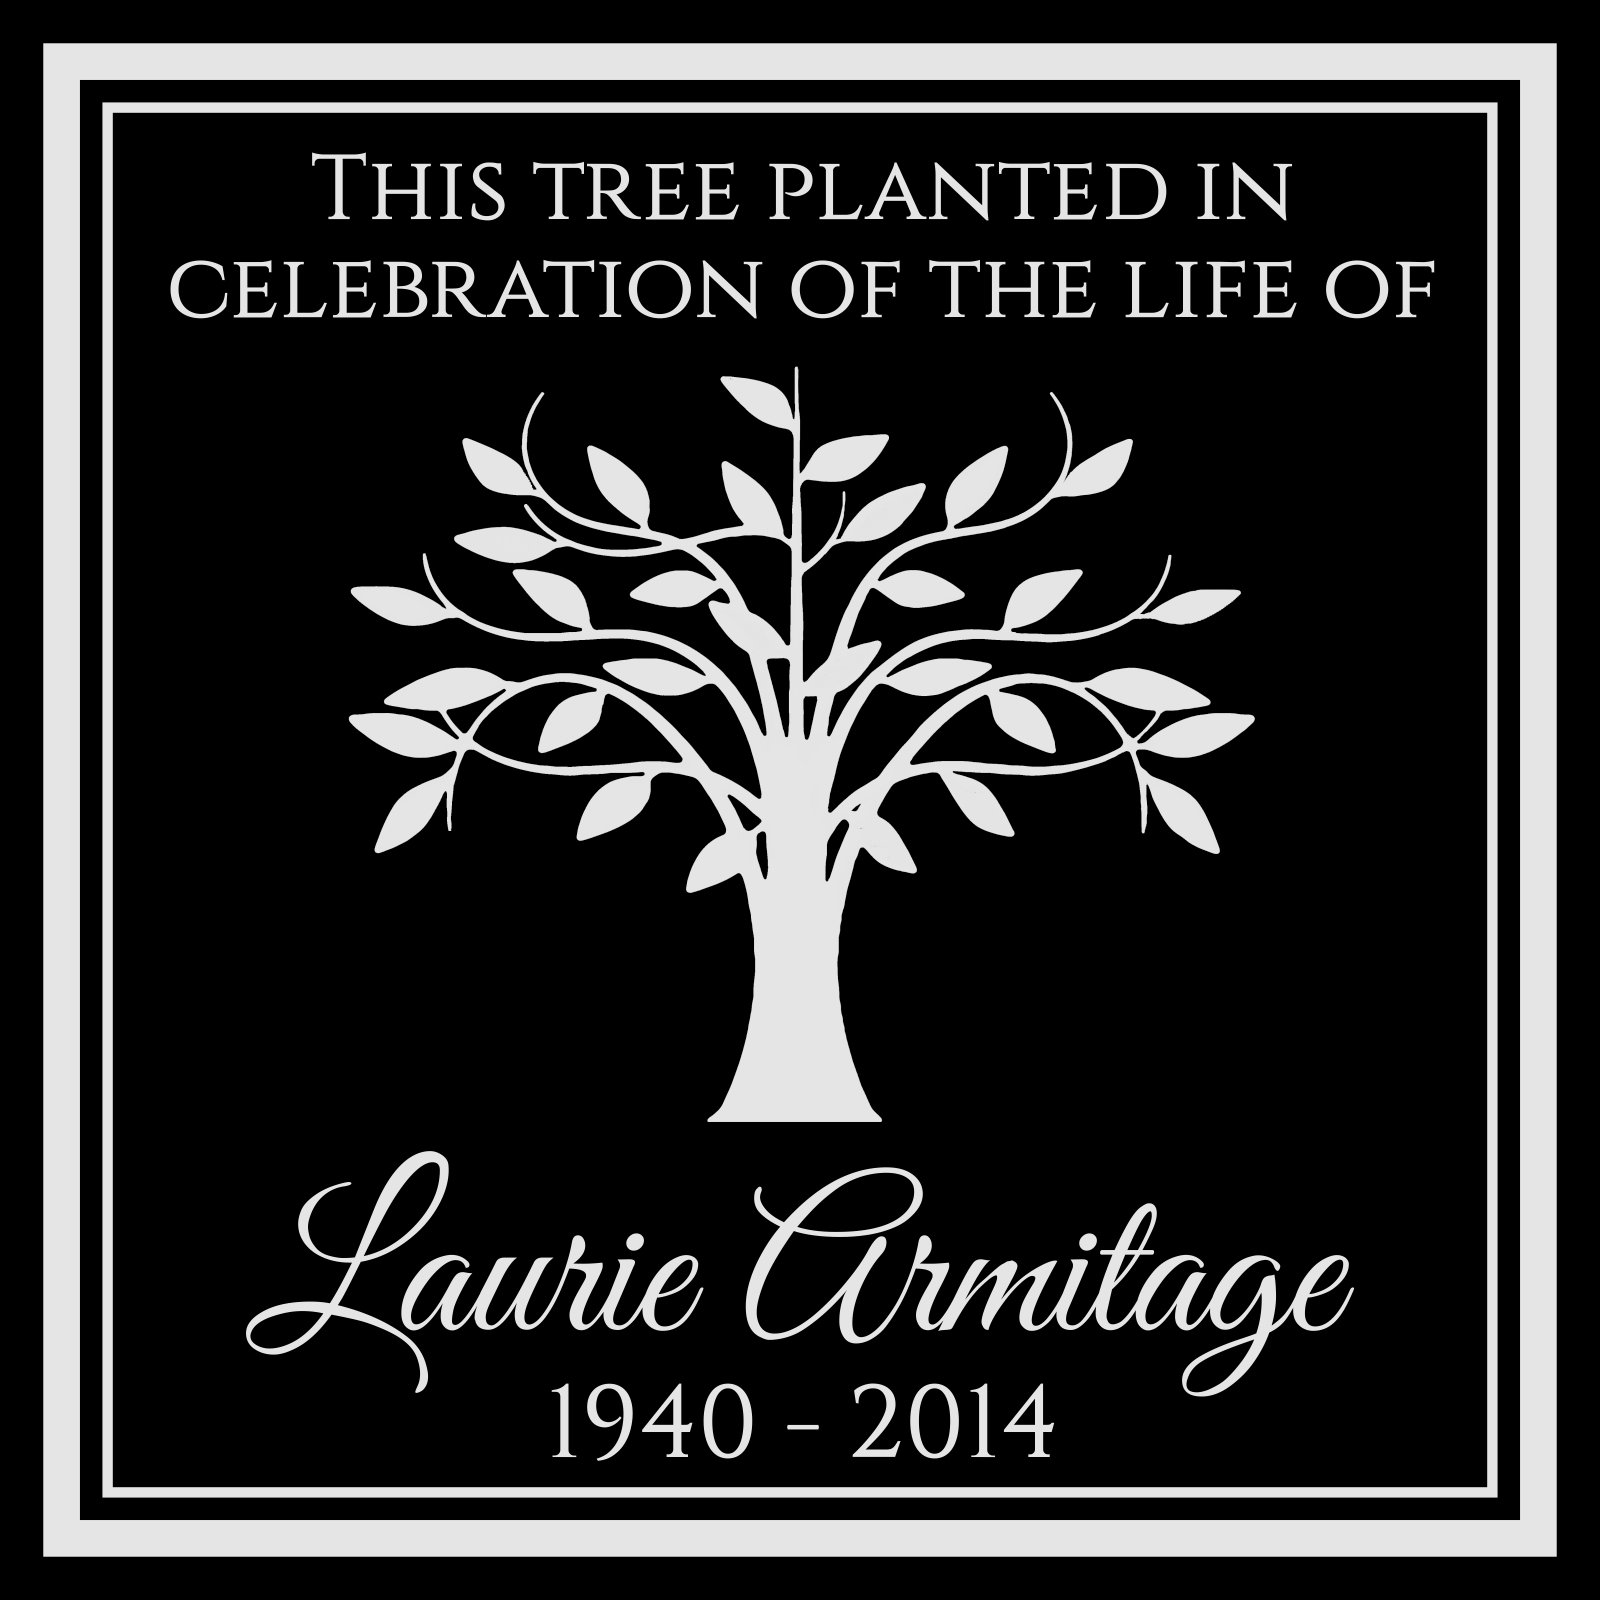 Lazzari Collections Custom Made Personalized Tree Planting Dedication Ceremony Memorial 12x12 Inch Engraved Black Granite Grave Marker Headstone Plaque LA1 by Lazzari Collections (Image #1)